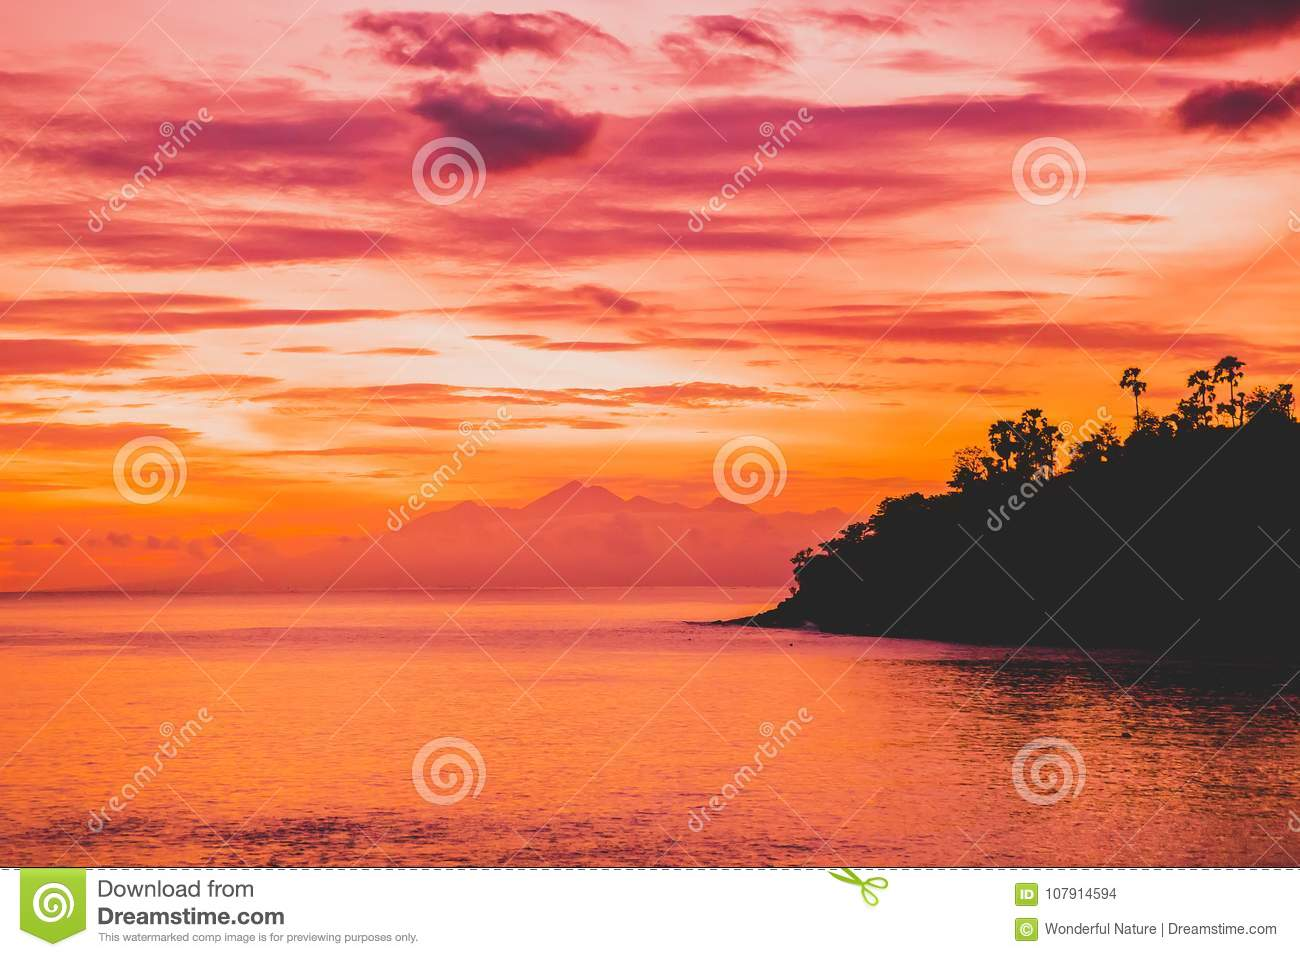 ocean at bright sunset or sunrise in ocean sea with warm sunset